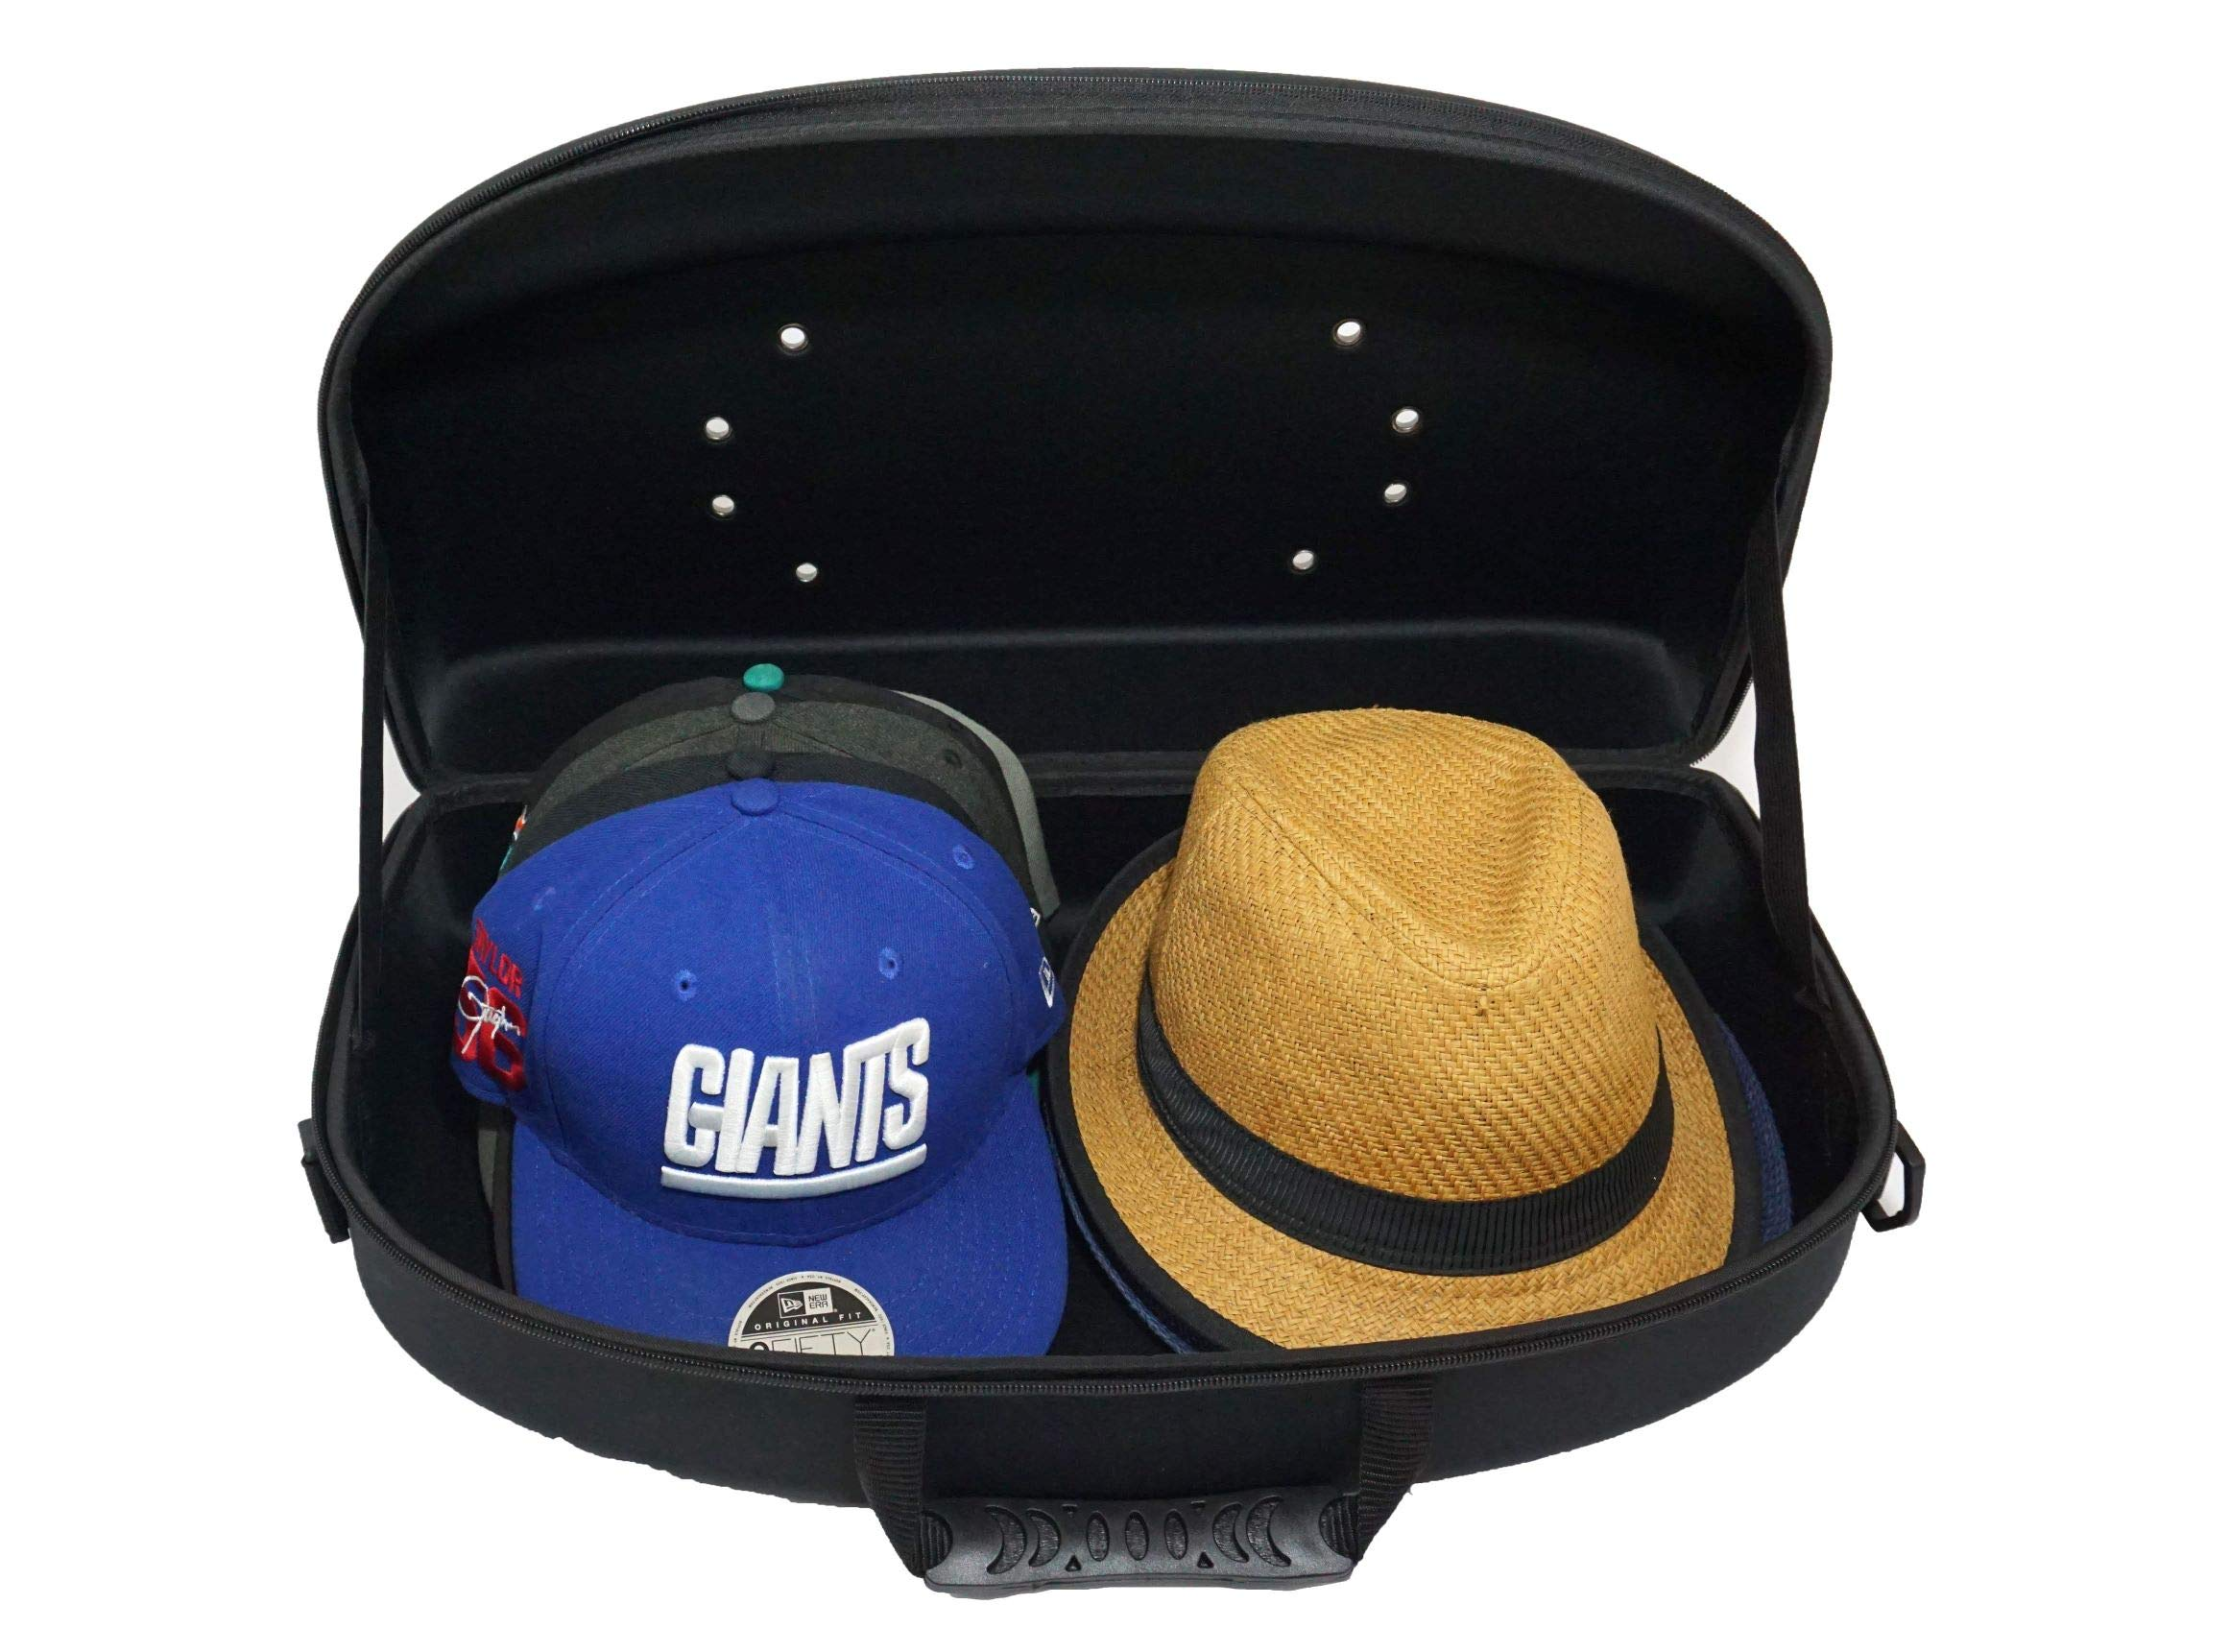 Hat Carrier/Cap Case Organizer for Travel and Storage for Baseball Cap and Fedora Style Hats by Joshmin